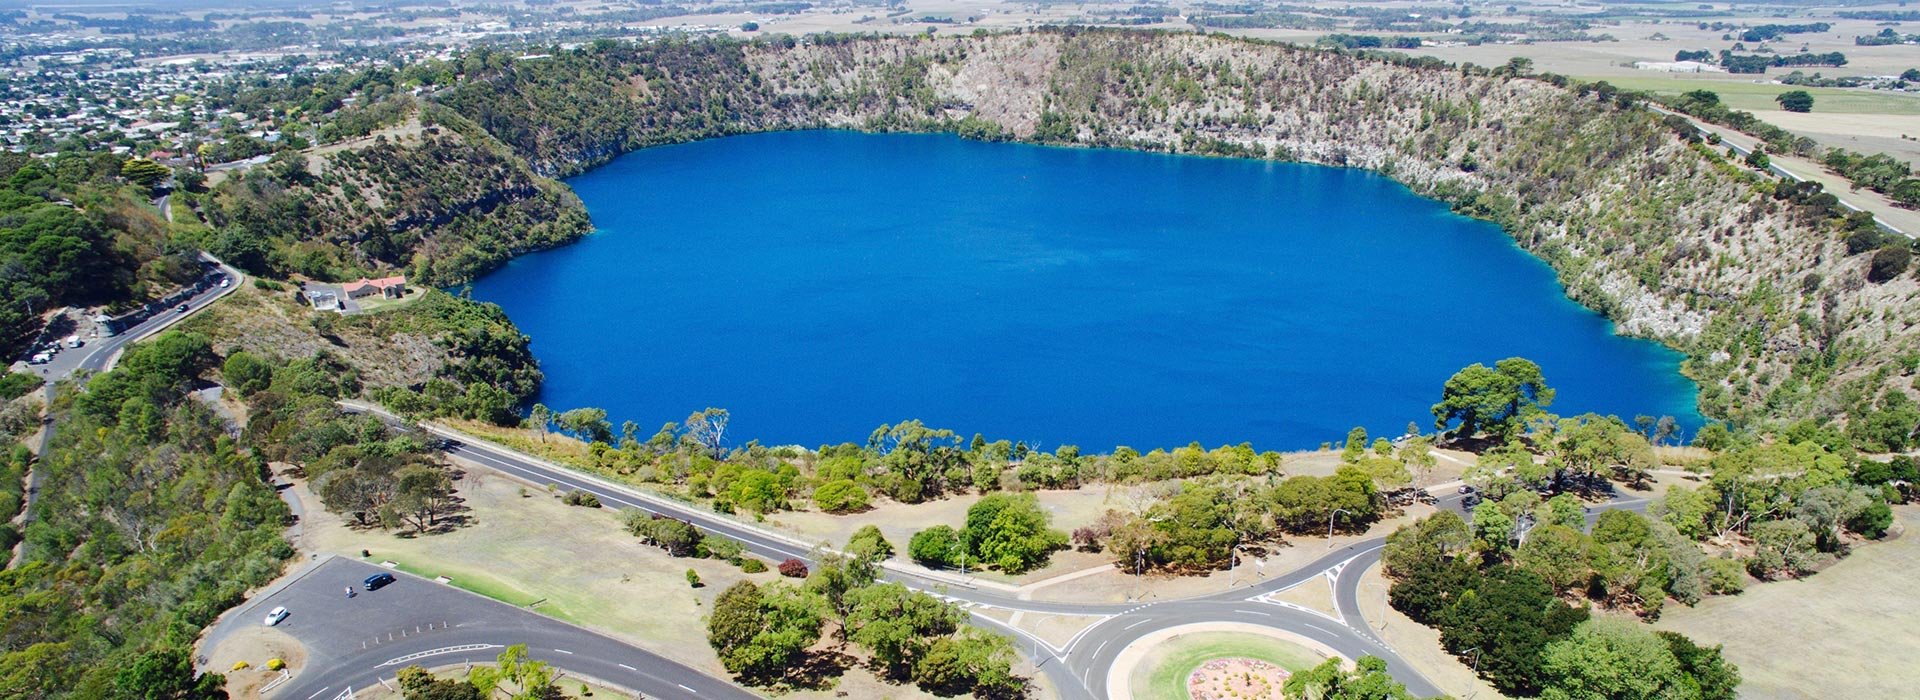 About Mount Gambier